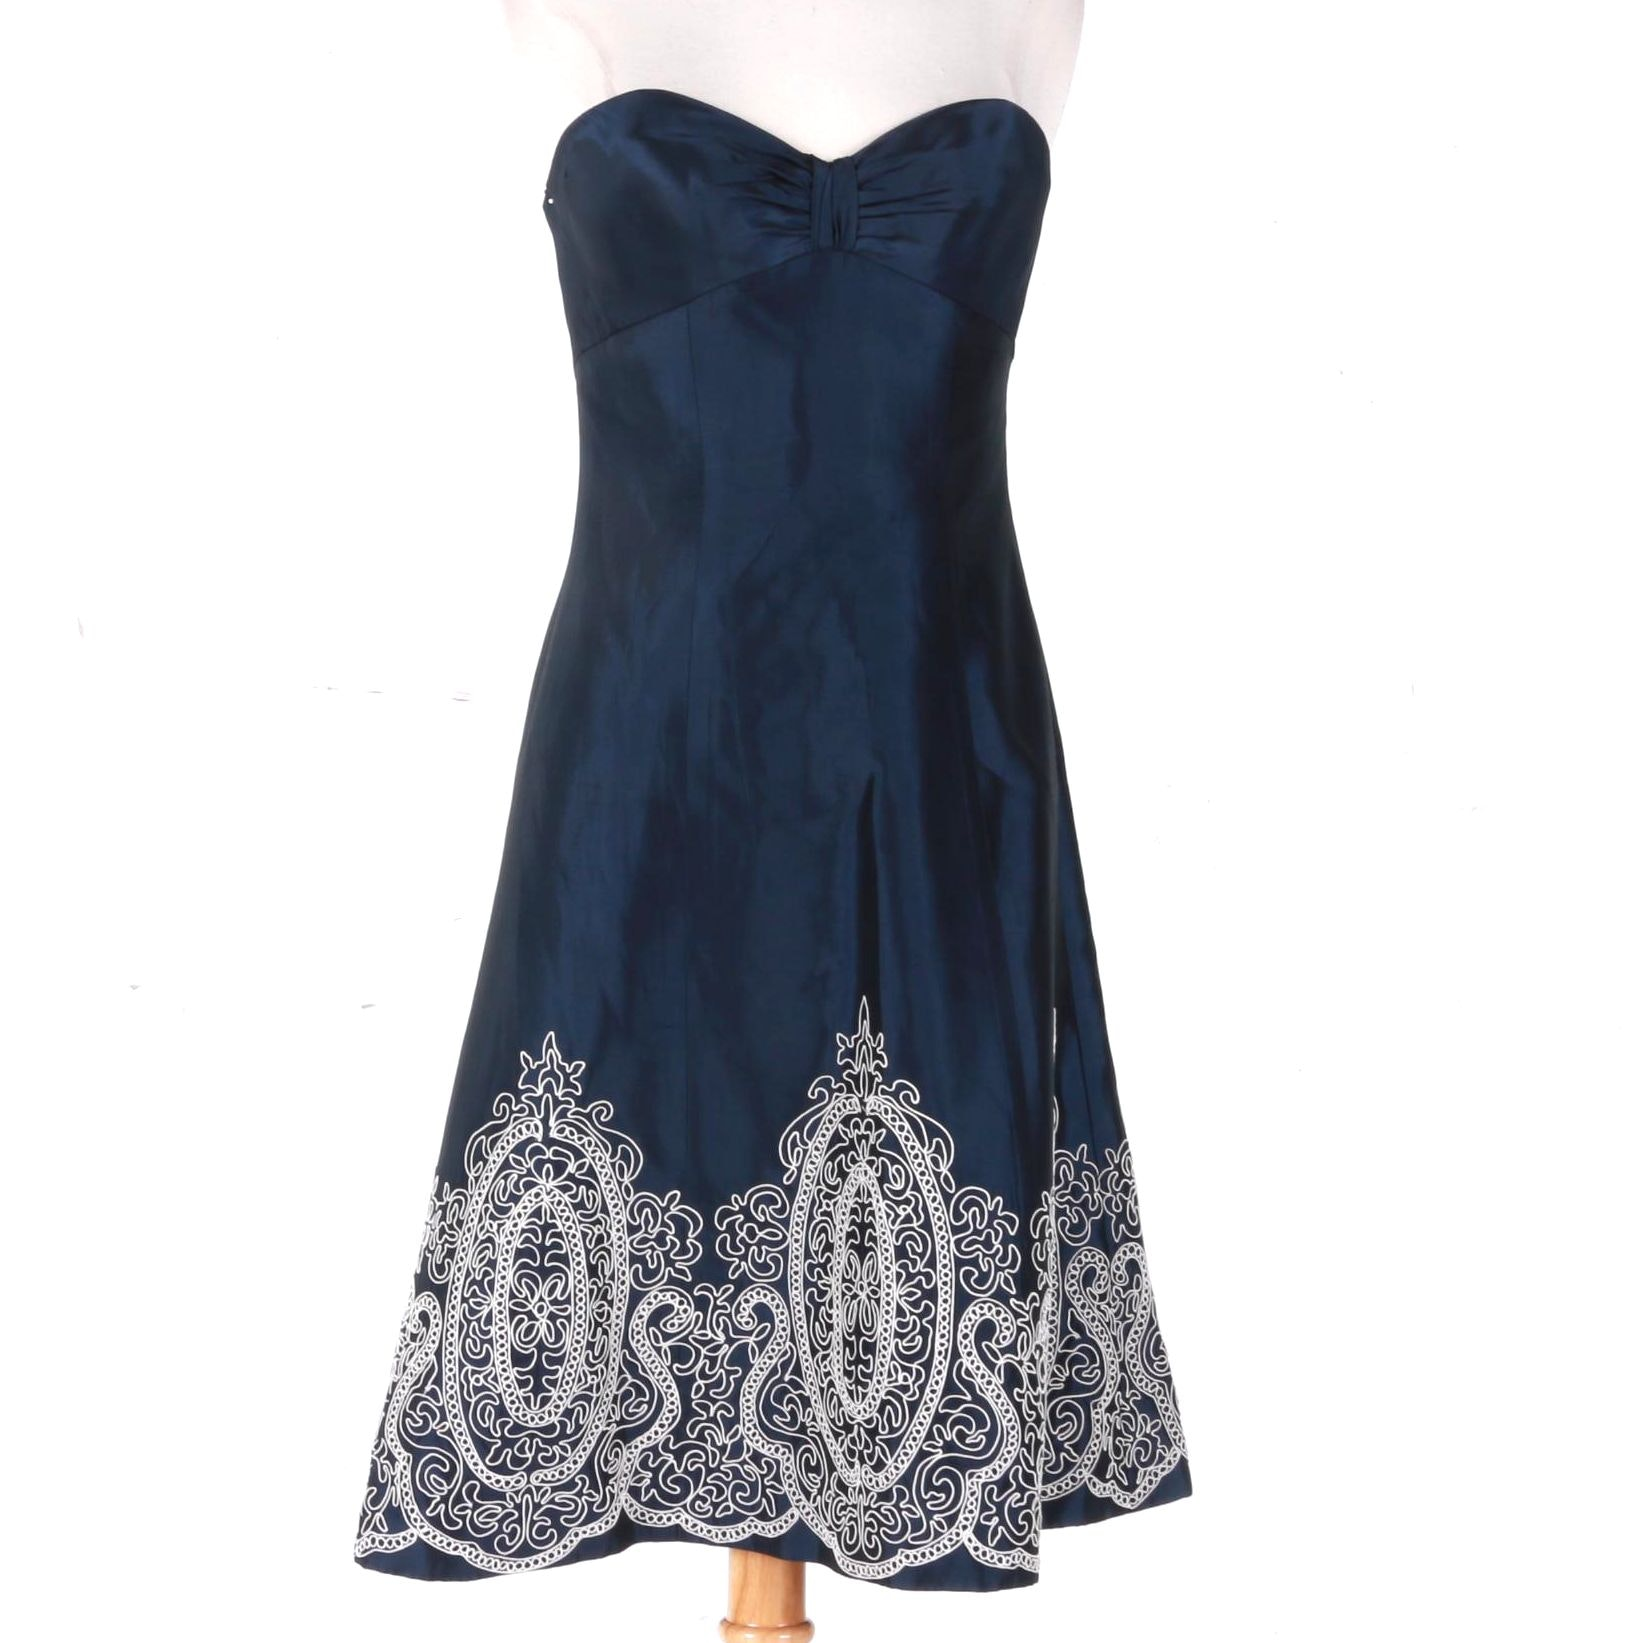 Badgley Mischka Embroidered Dress